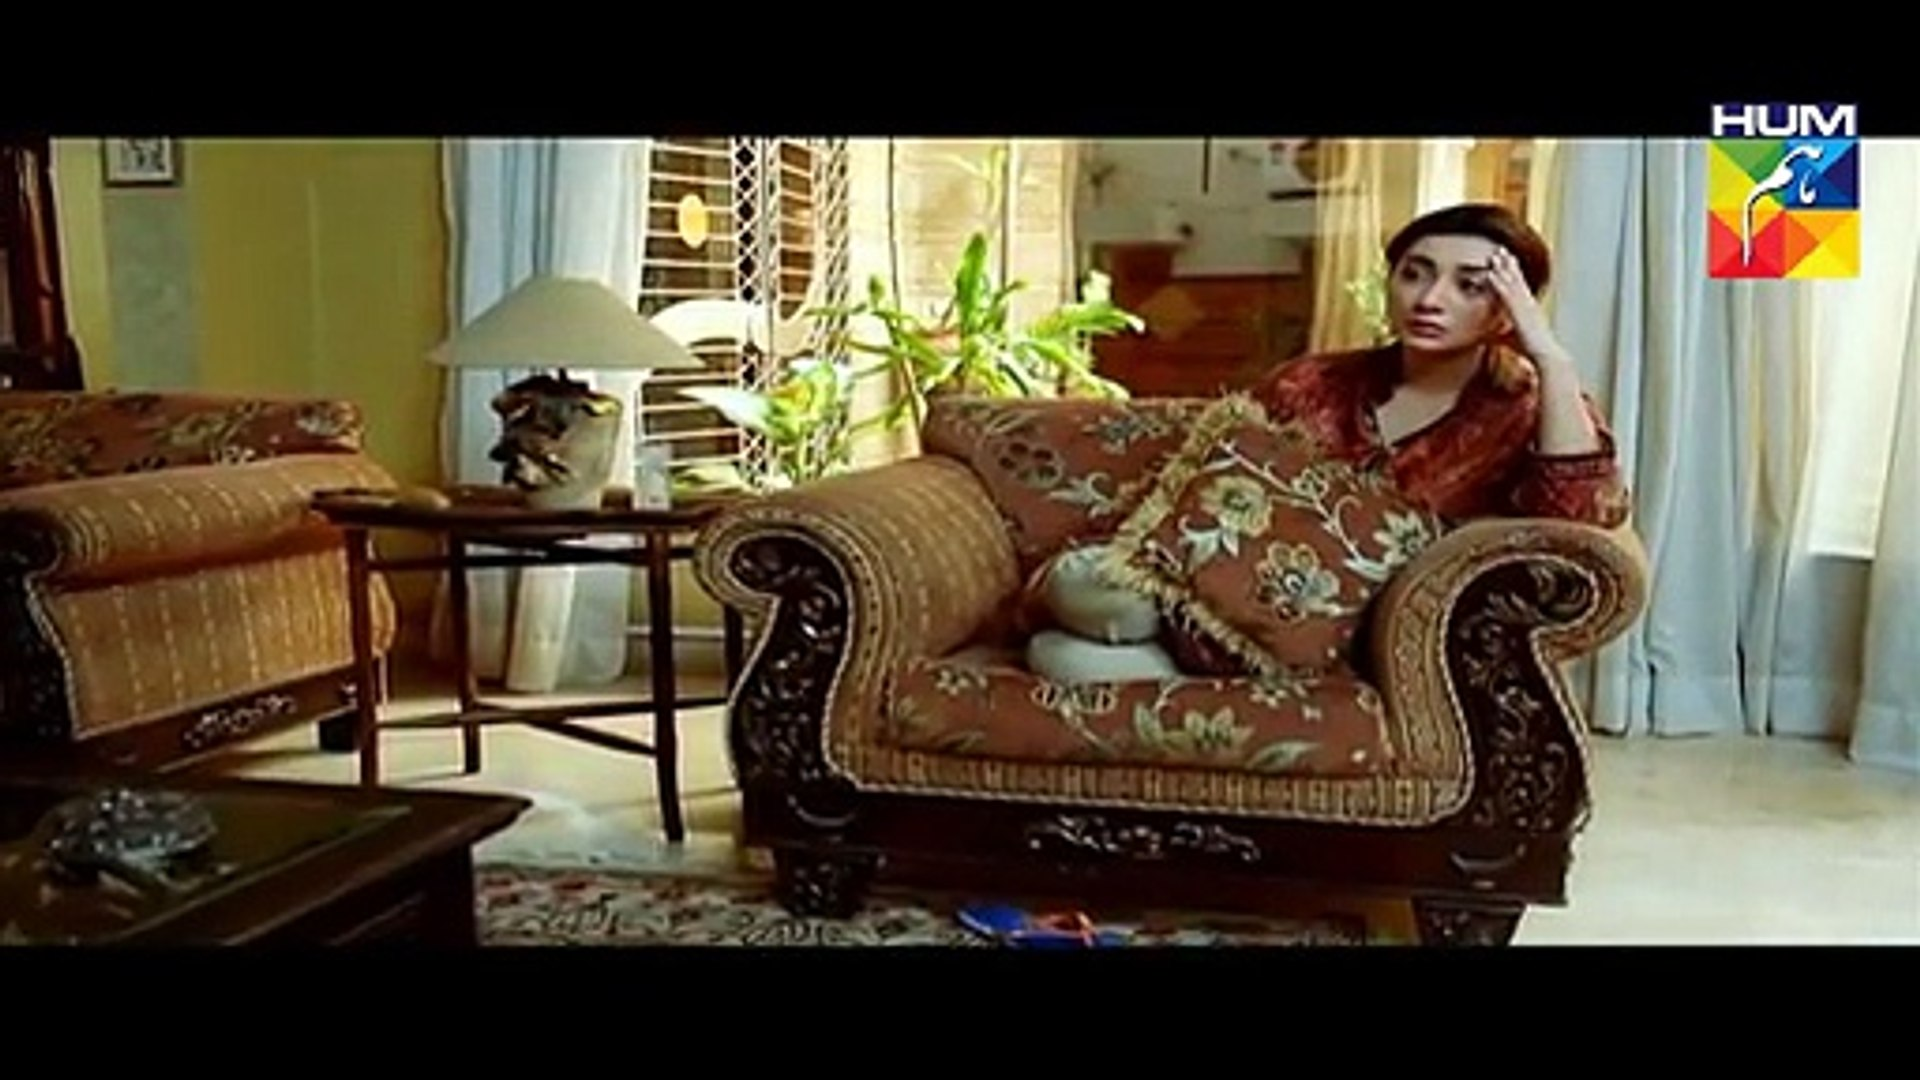 Tumhare Siwa Episode 15 Full on Hum Tv in- 4th December 2015